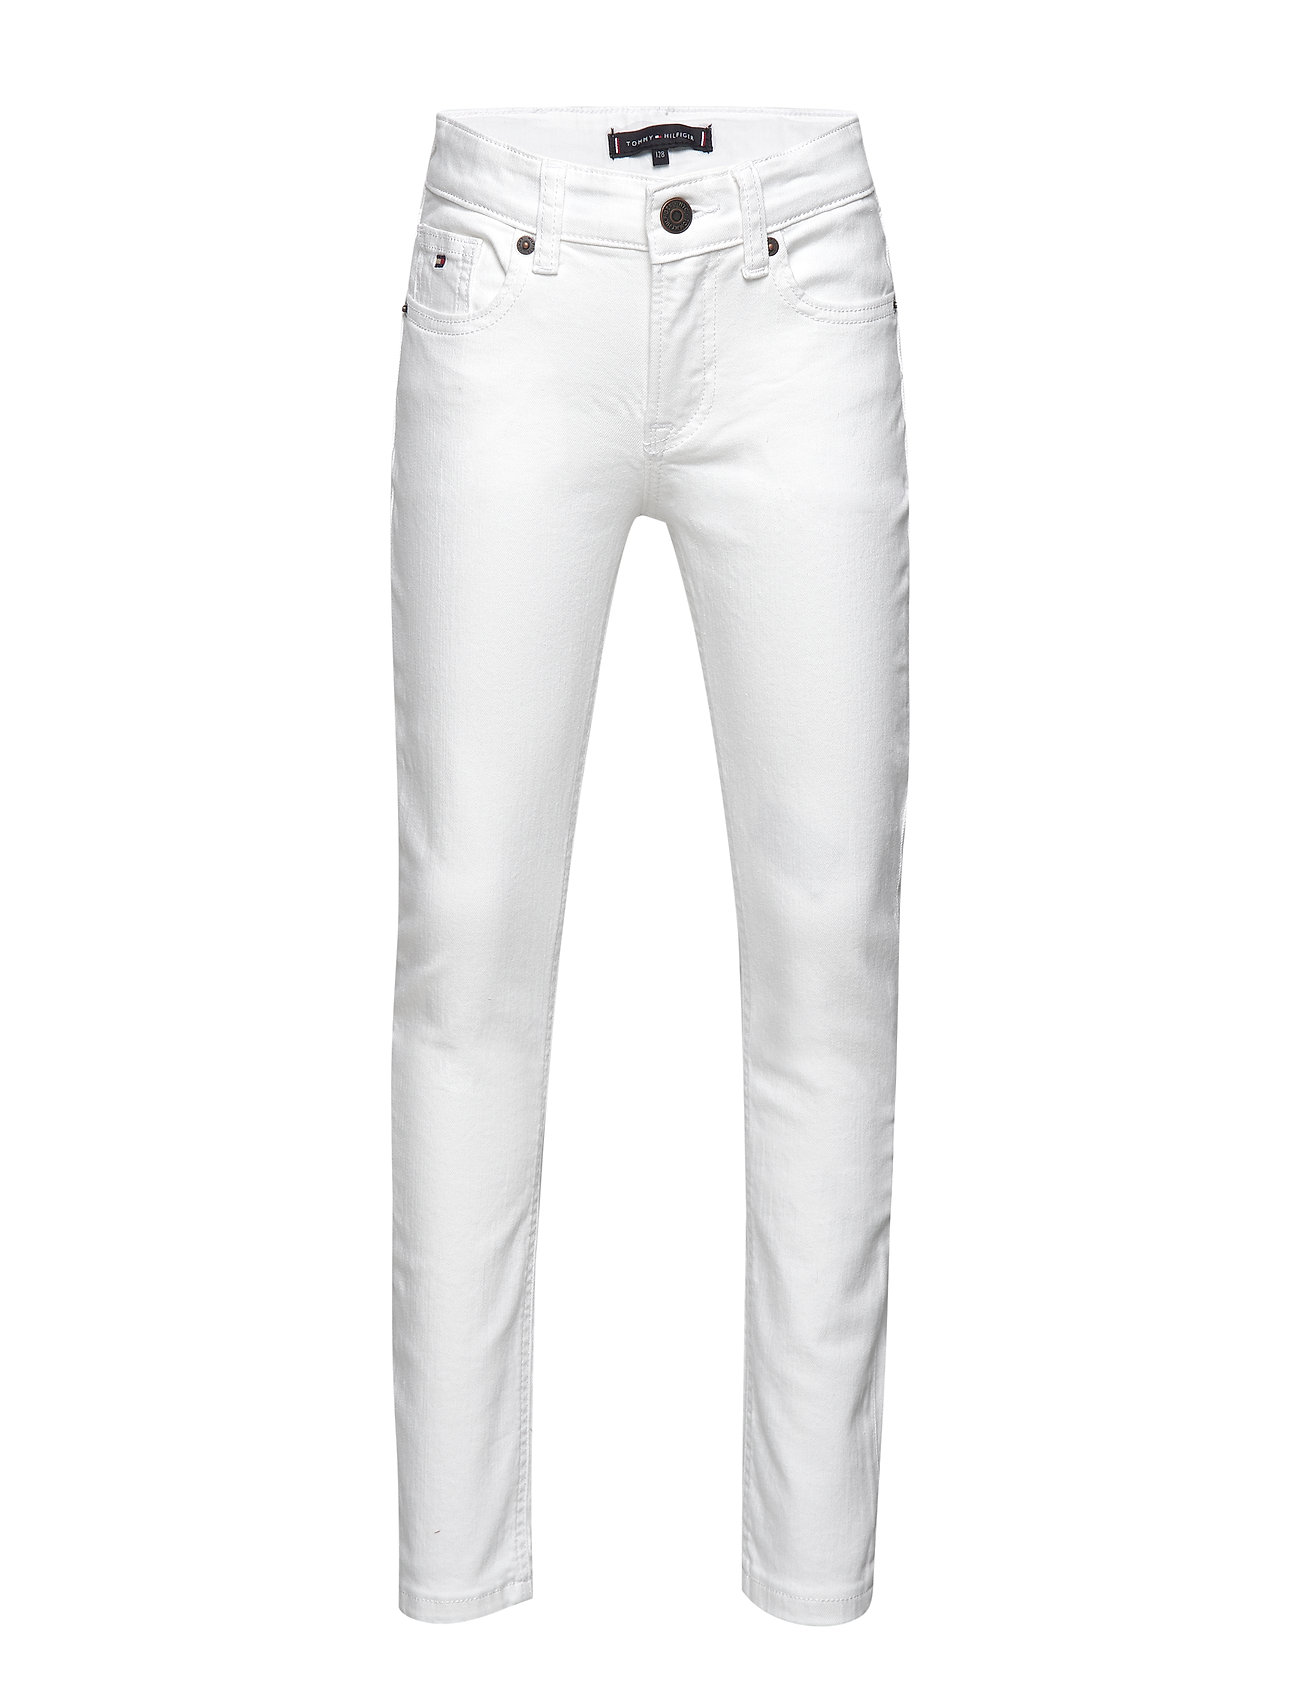 Tommy Hilfiger SCANTON SOCDST - SOFT COLORED DENIM STRETCH - W